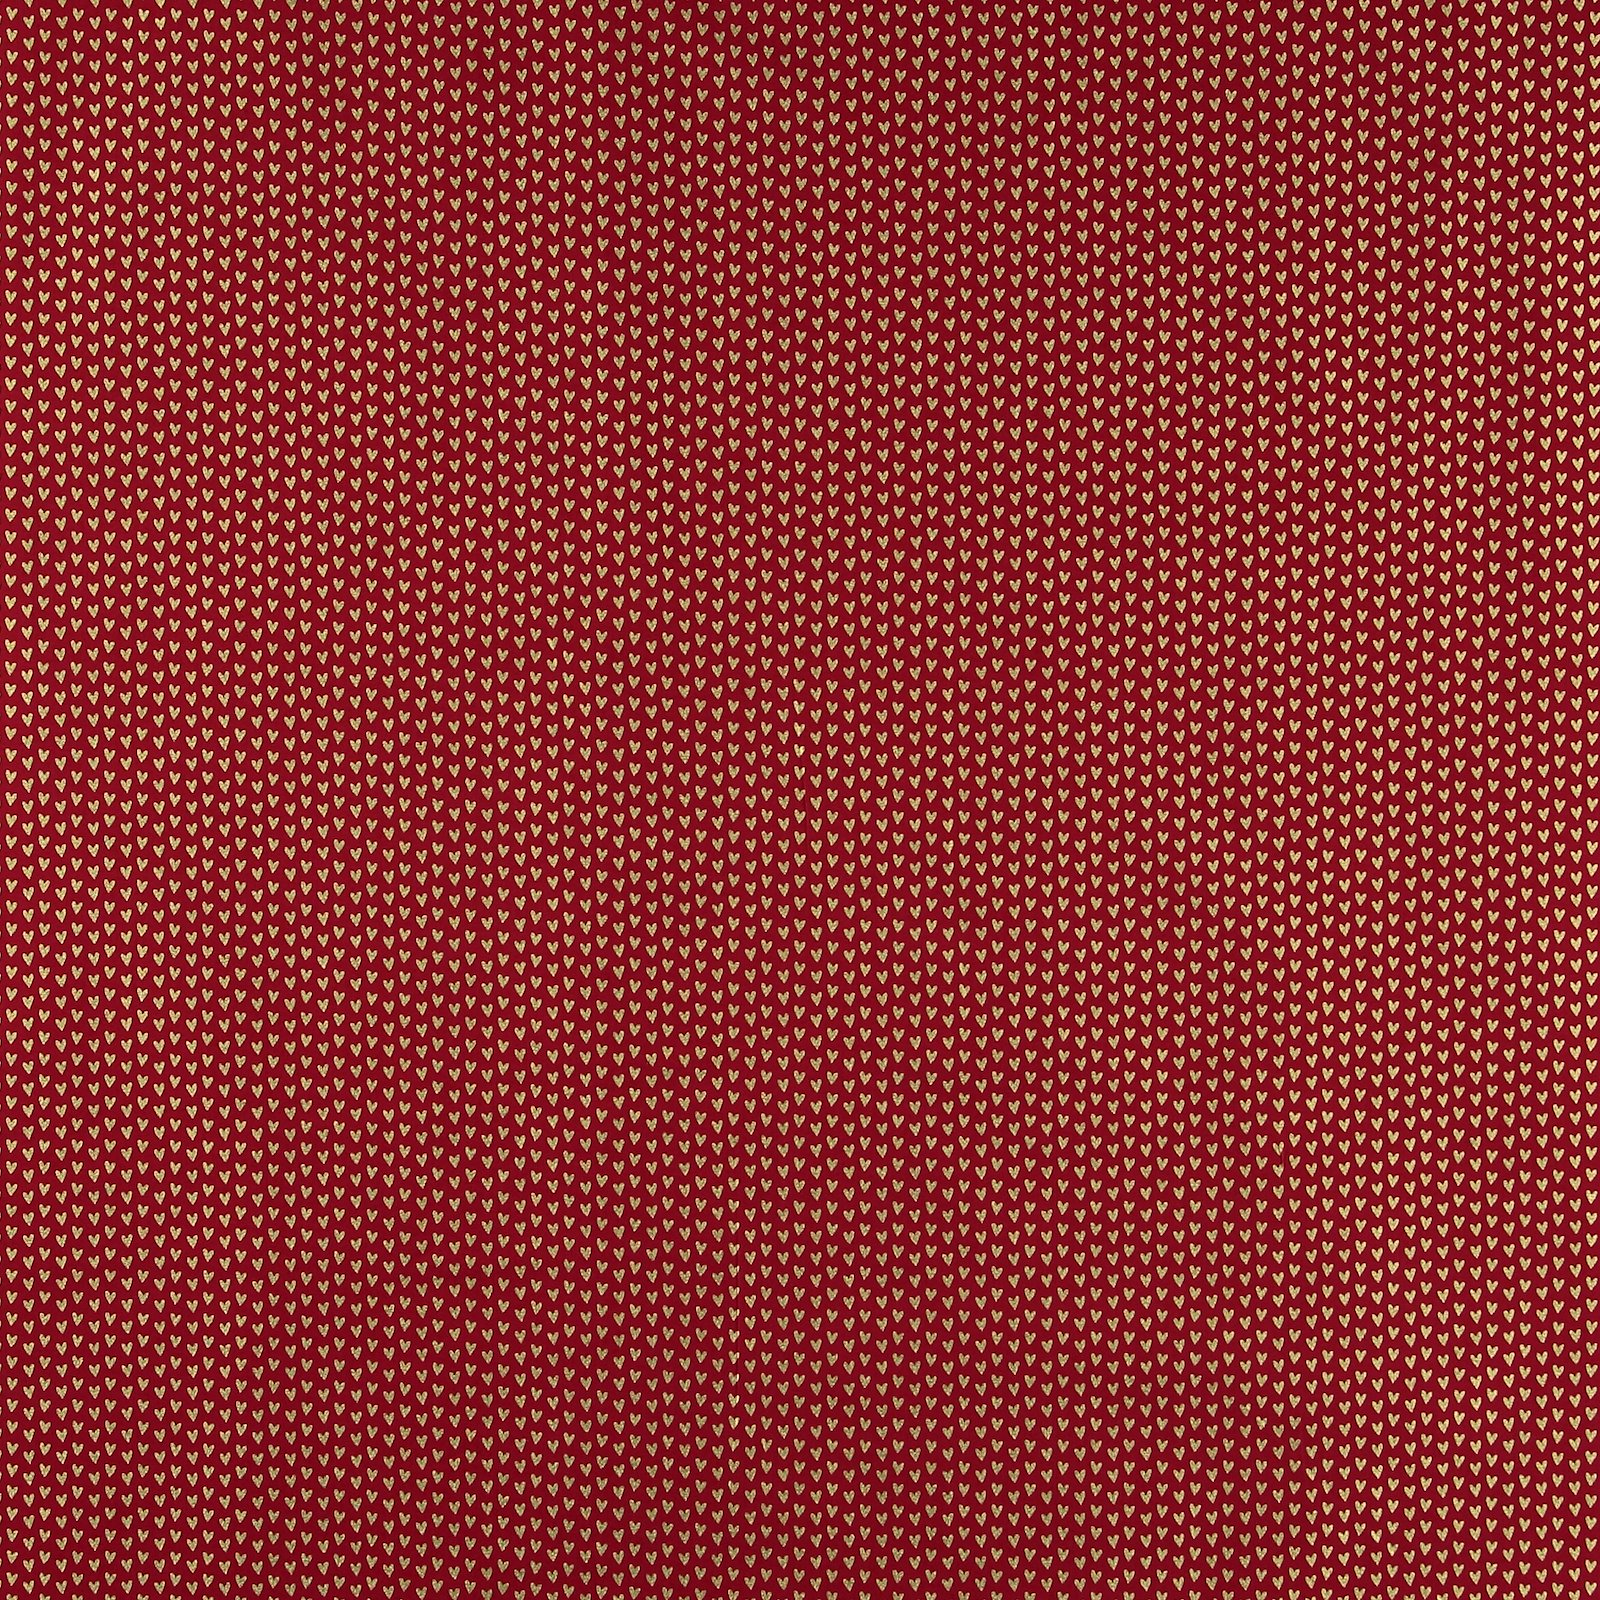 Cotton classic red with gold hearts 852397_pack_sp